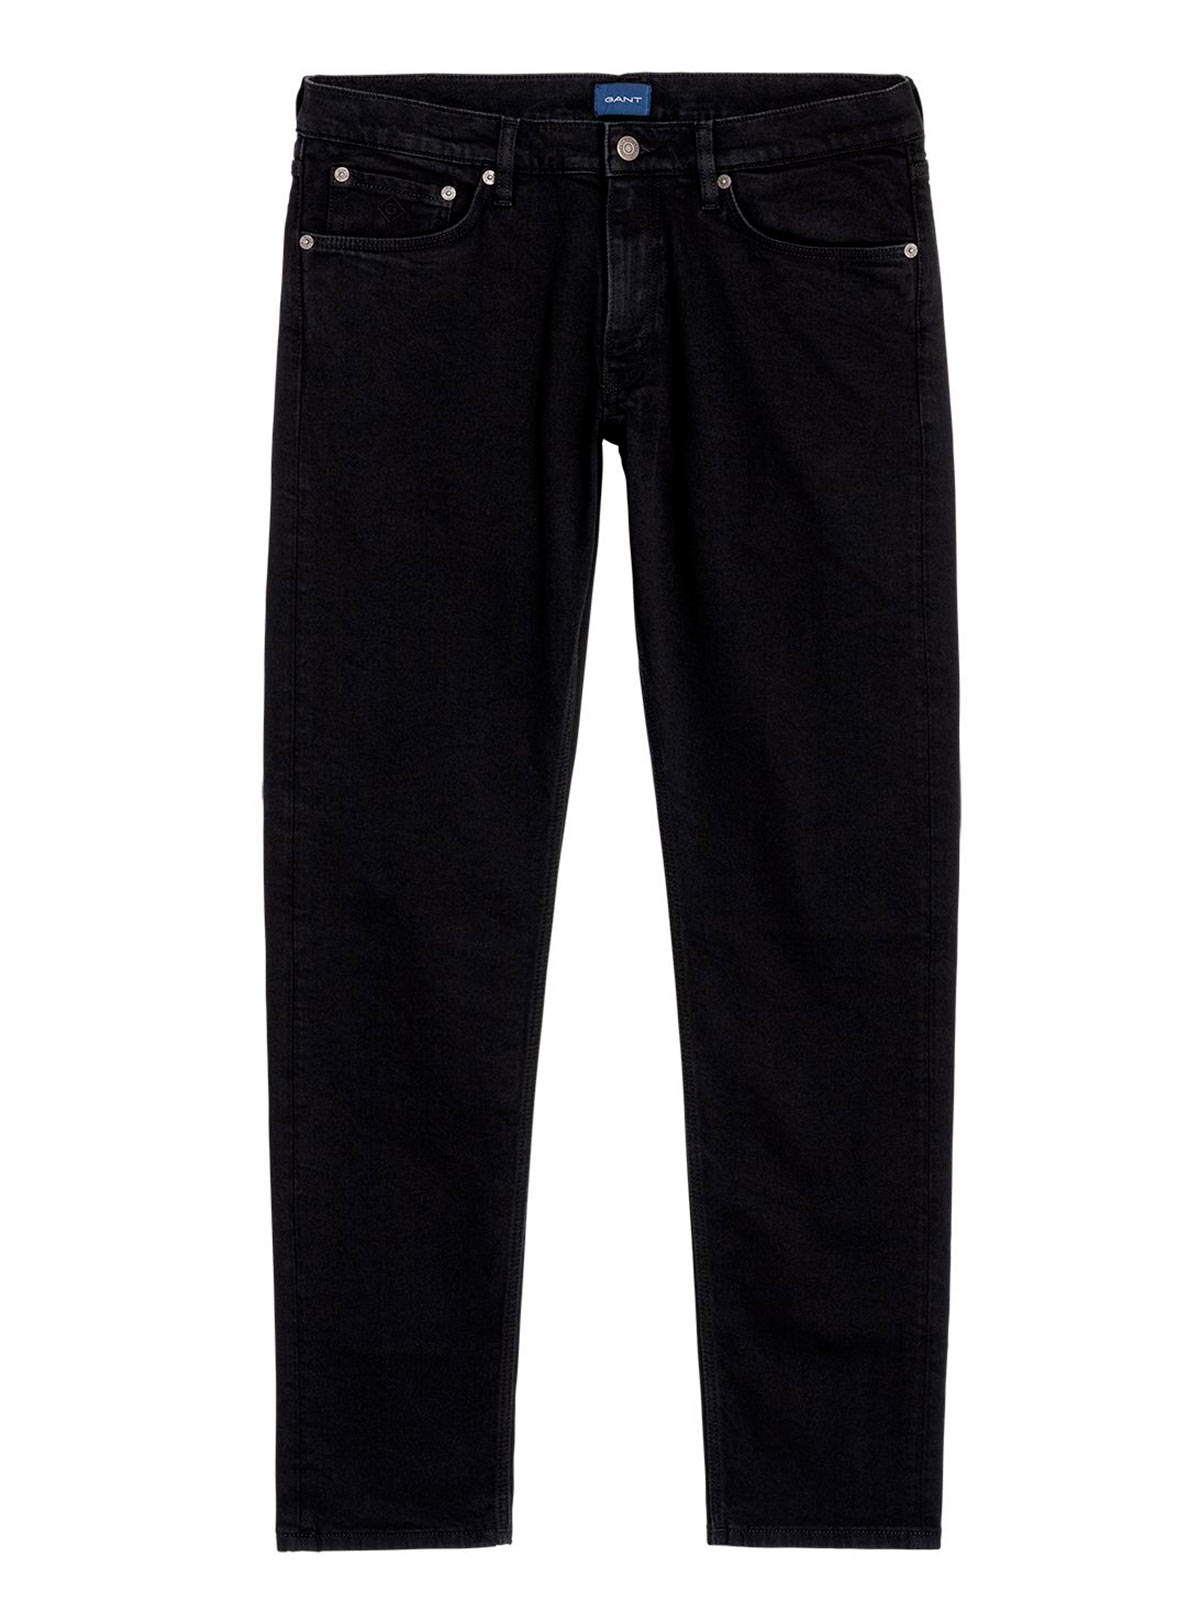 Picture of GANT | Men's Slim Tapered Jeans